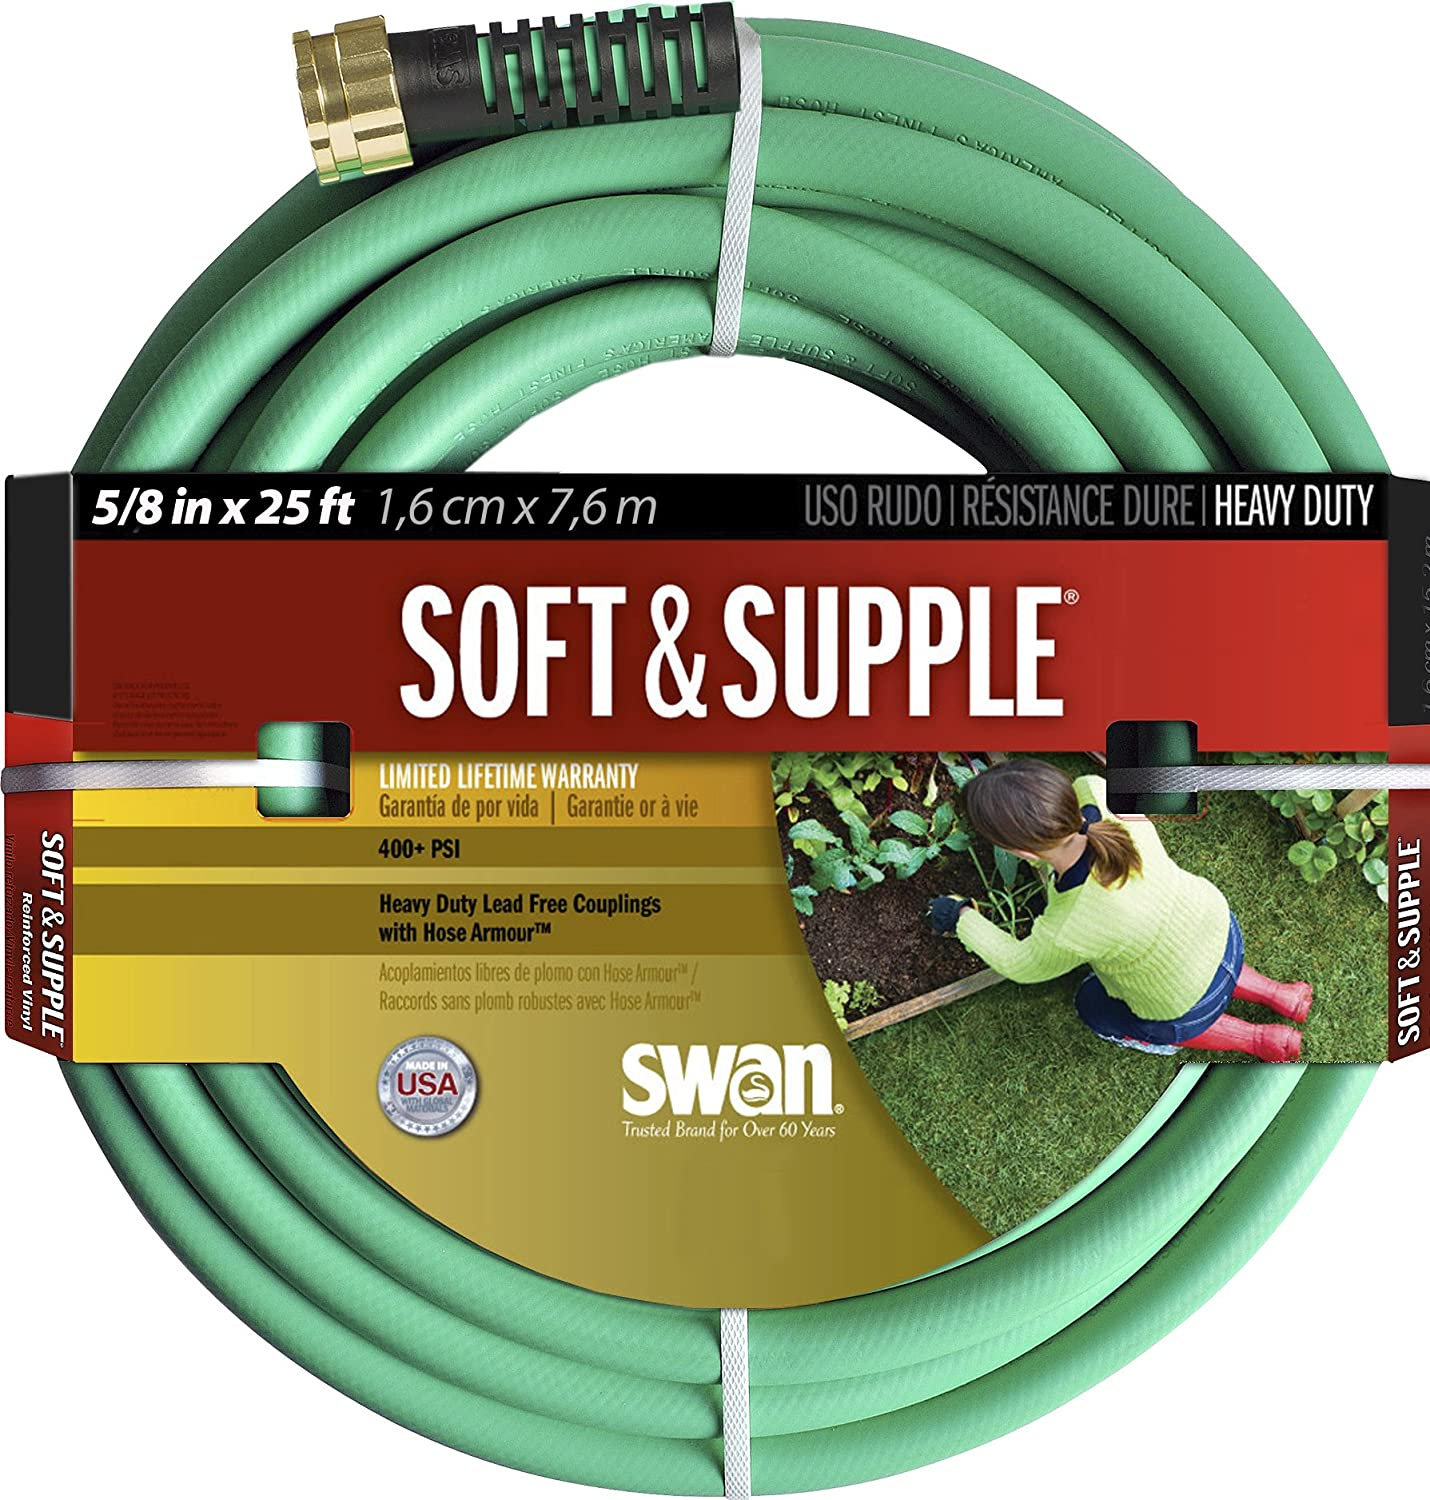 Swan Products SNSS58025 Soft & Supple Easy Coil Water Hose with Crush Proof Couplings 25' x 5/8